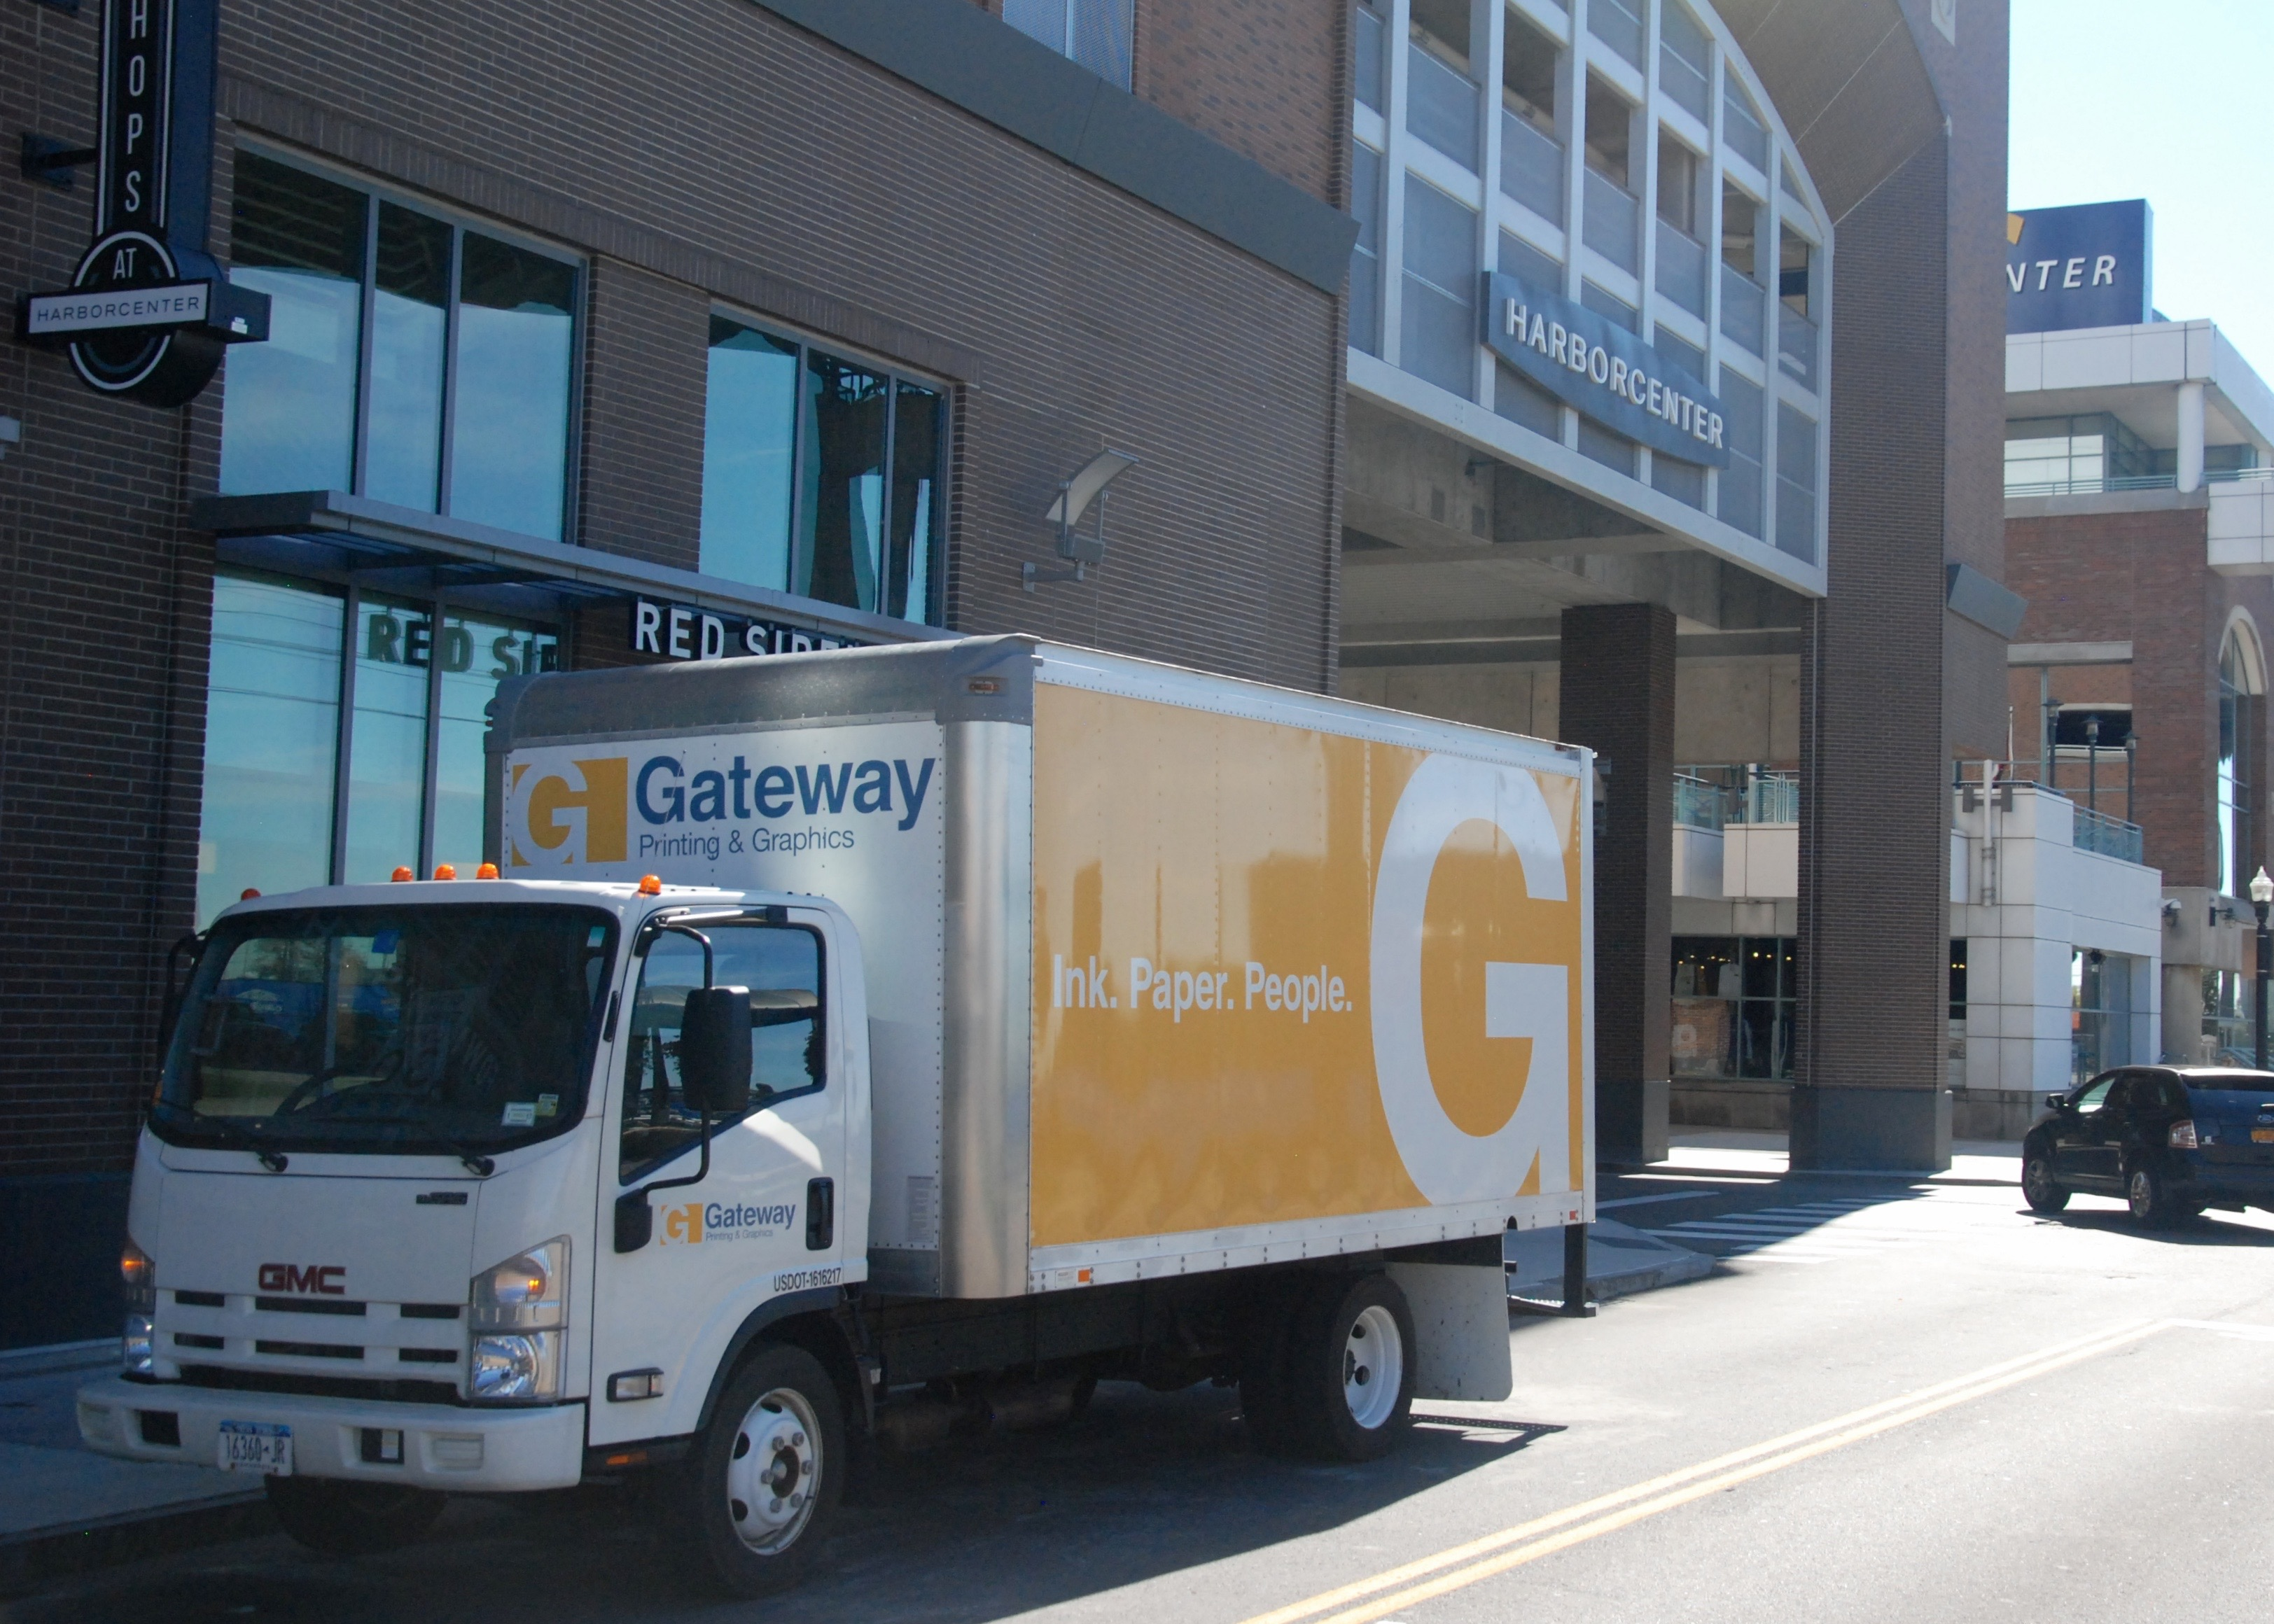 Gateway Hamburg Shipping Receiving Gateway Printing Graphics Inc